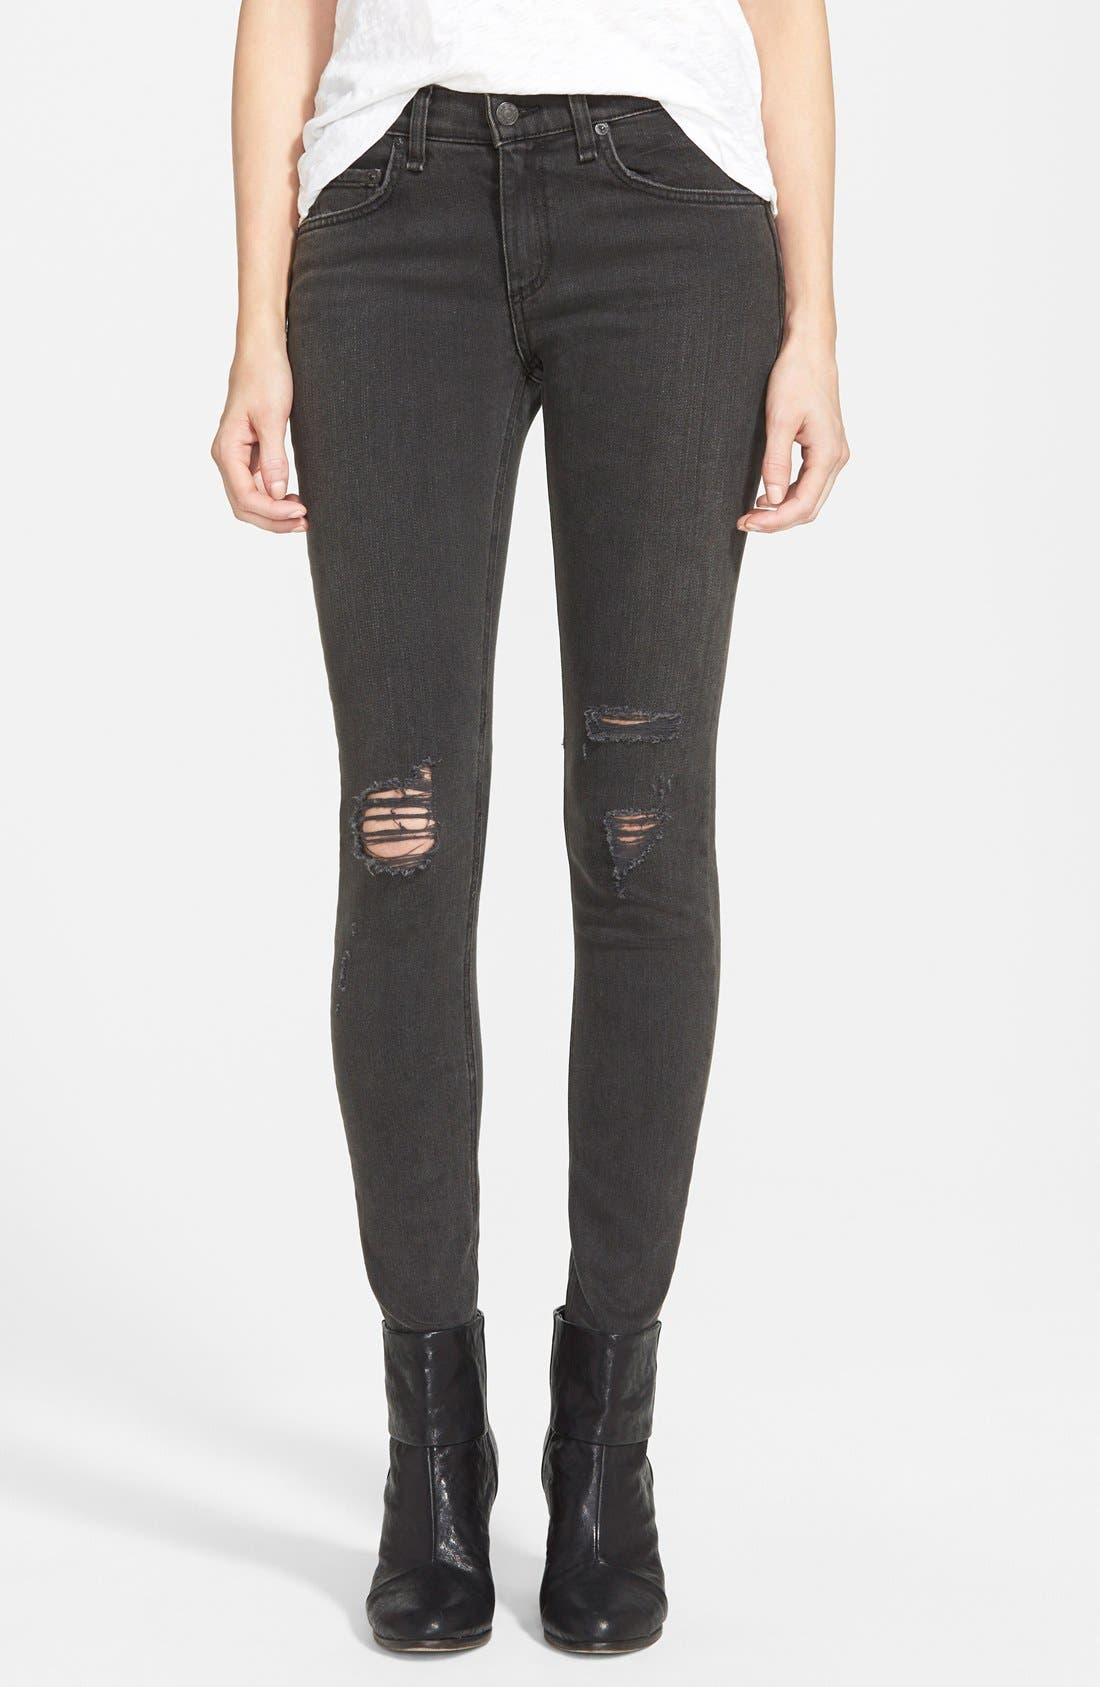 RAG & BONE JEAN Shredded Skinny Jeans, Main, color, 001